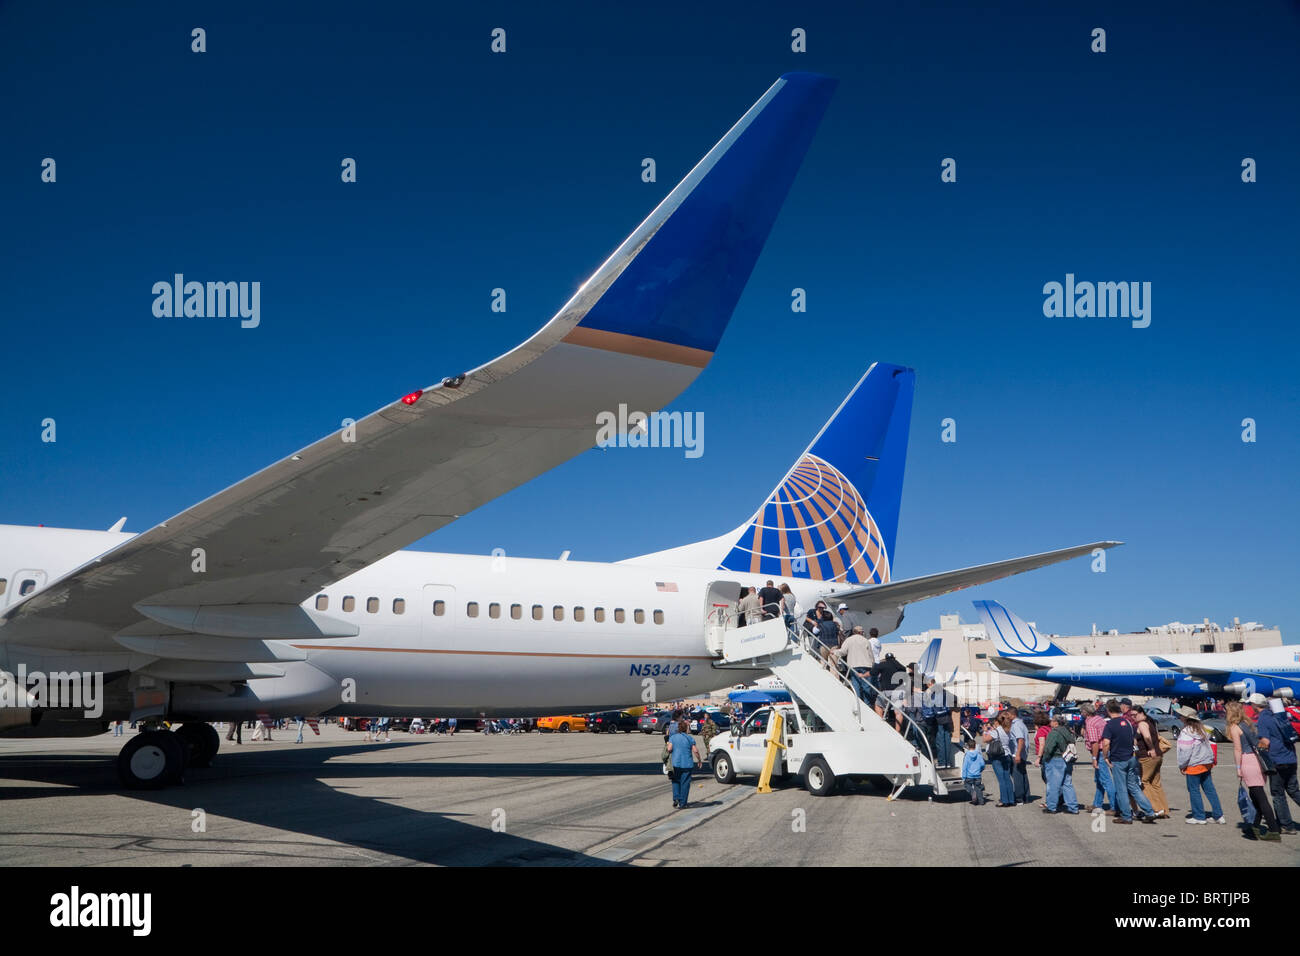 United Continental new airline company logo on airplane, with old United branded plane in background, October 10, - Stock Image